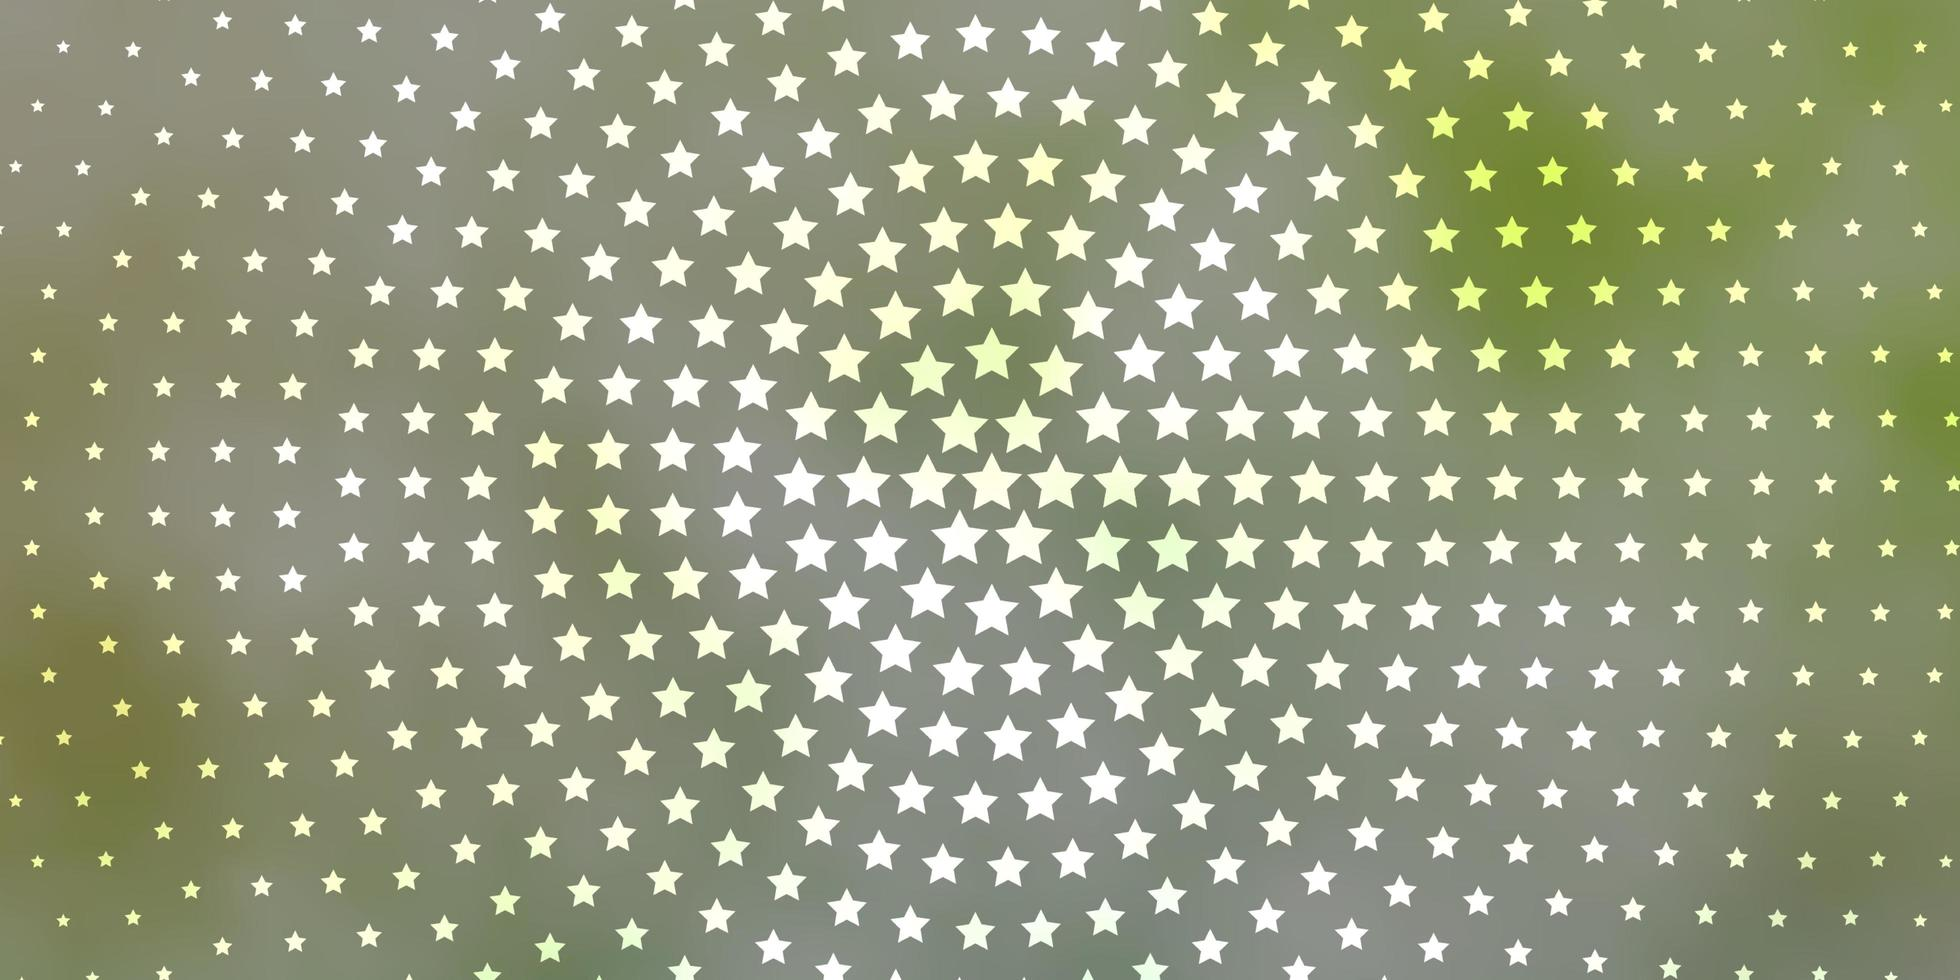 Light Green texture with beautiful stars. vector